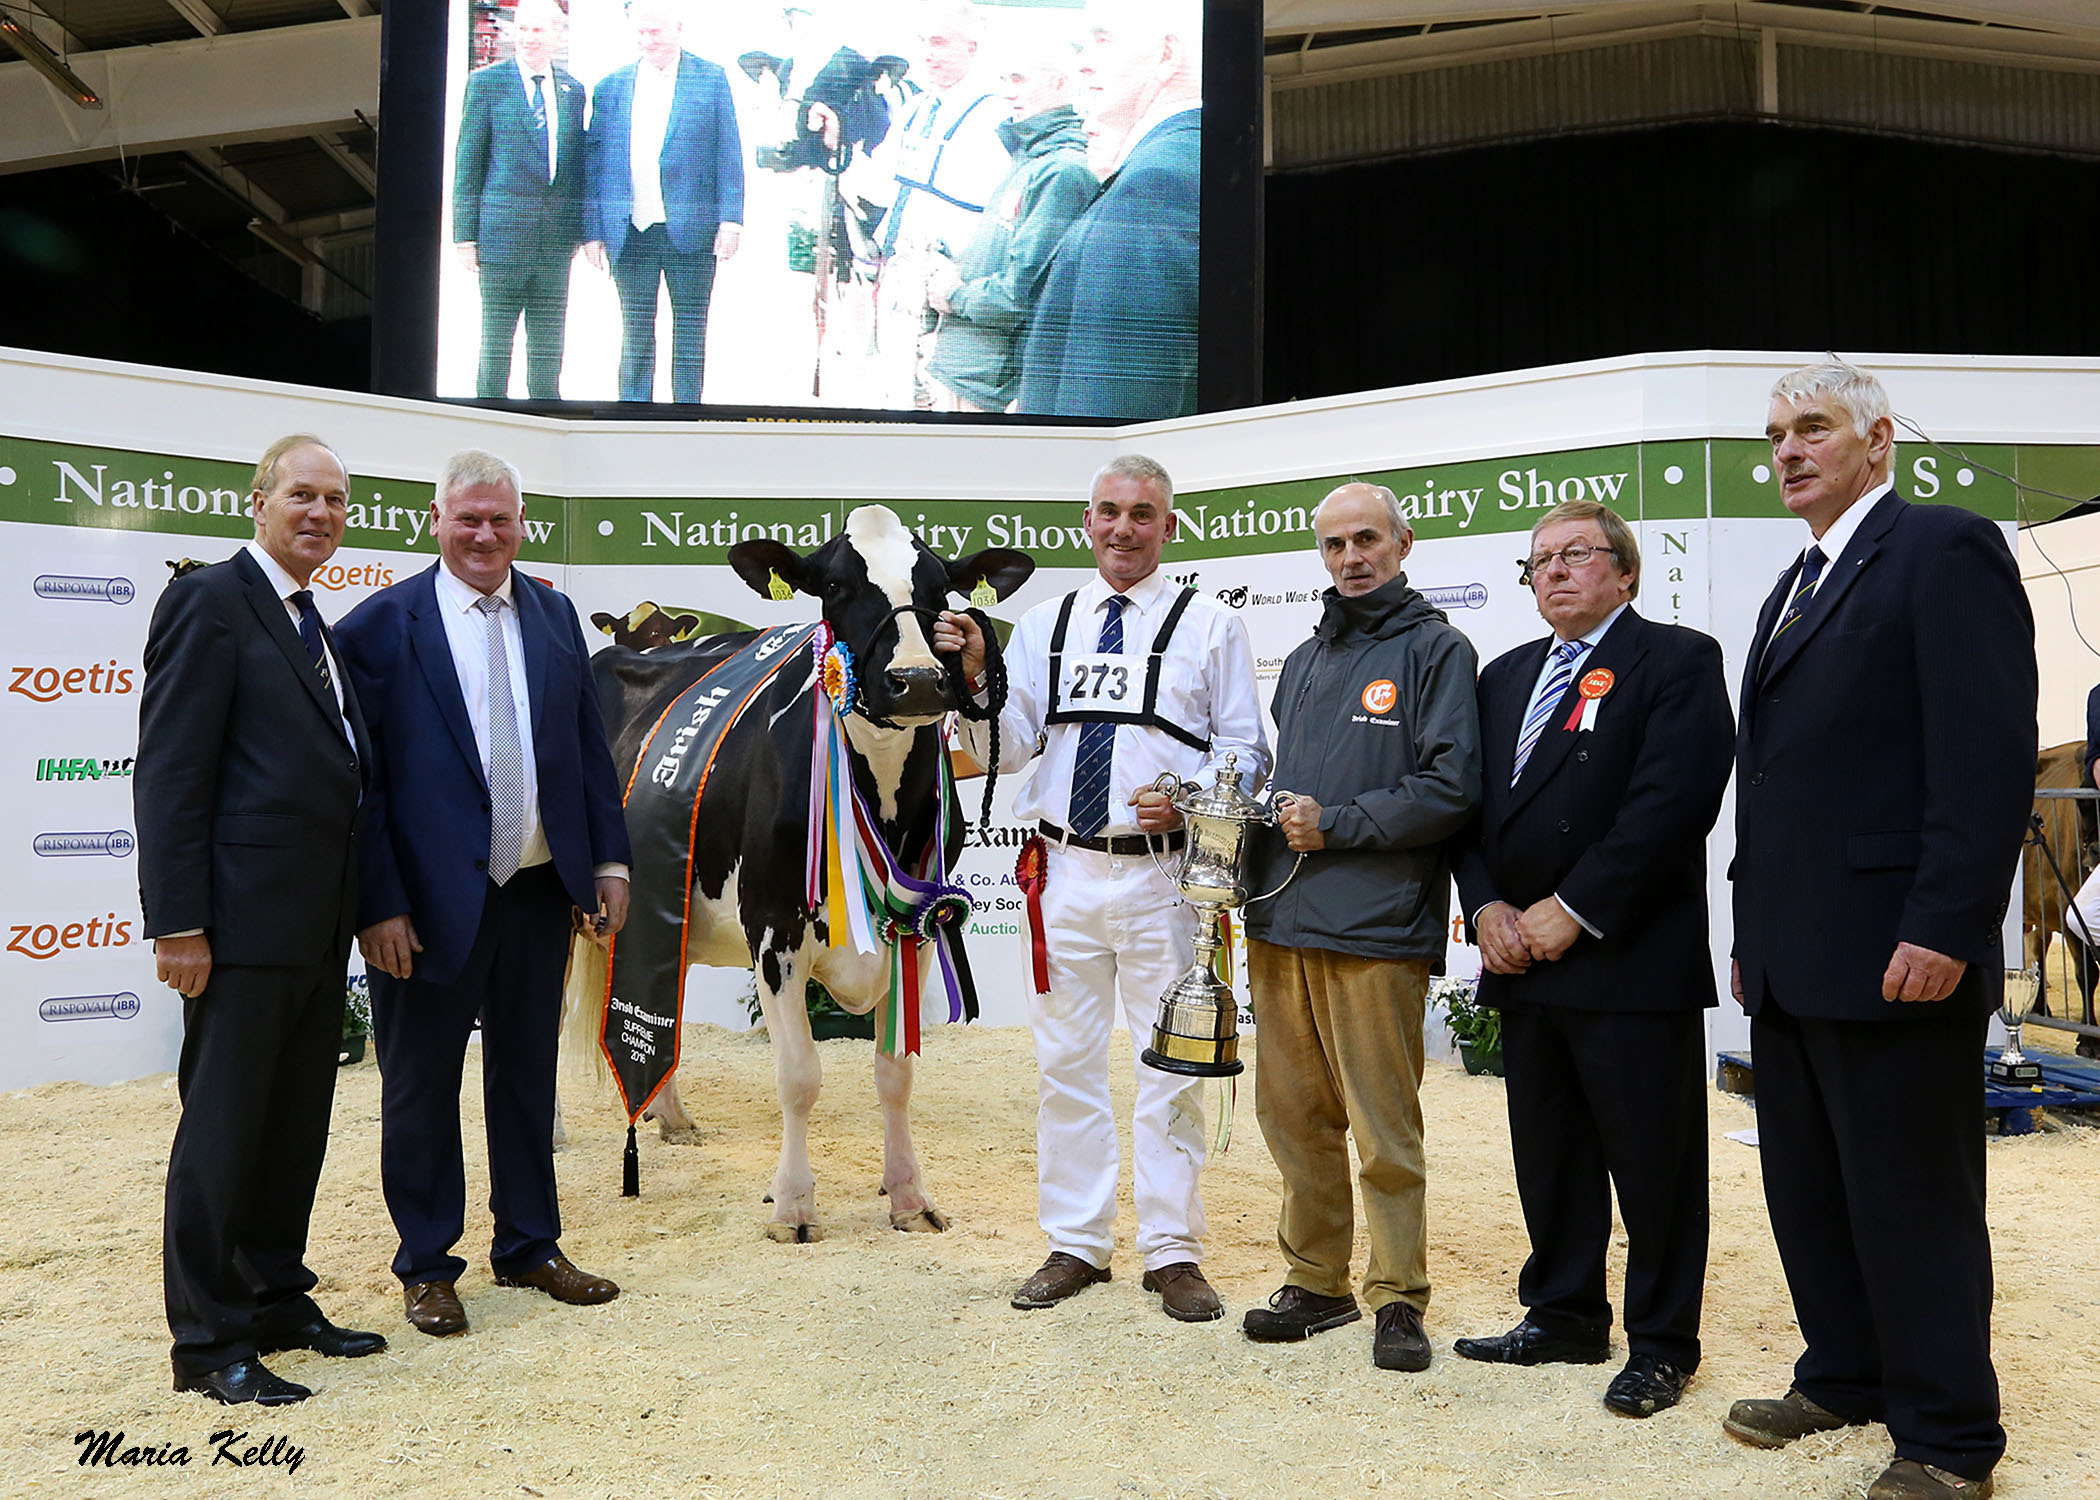 22-10-16 Charles Gallagher, CE IHFA, John Kirby, Show Director with Laurelelm Shottel Daffodil 2 Supreme Champion owned by the Barrett family, Rickey Barrett on halter with Stephen Cadogan, Irish Examiner, sponsor, Meurig James, Judge and Carlisle Smith, President Cork Holstein Friesian Club. Photo Maria Kelly